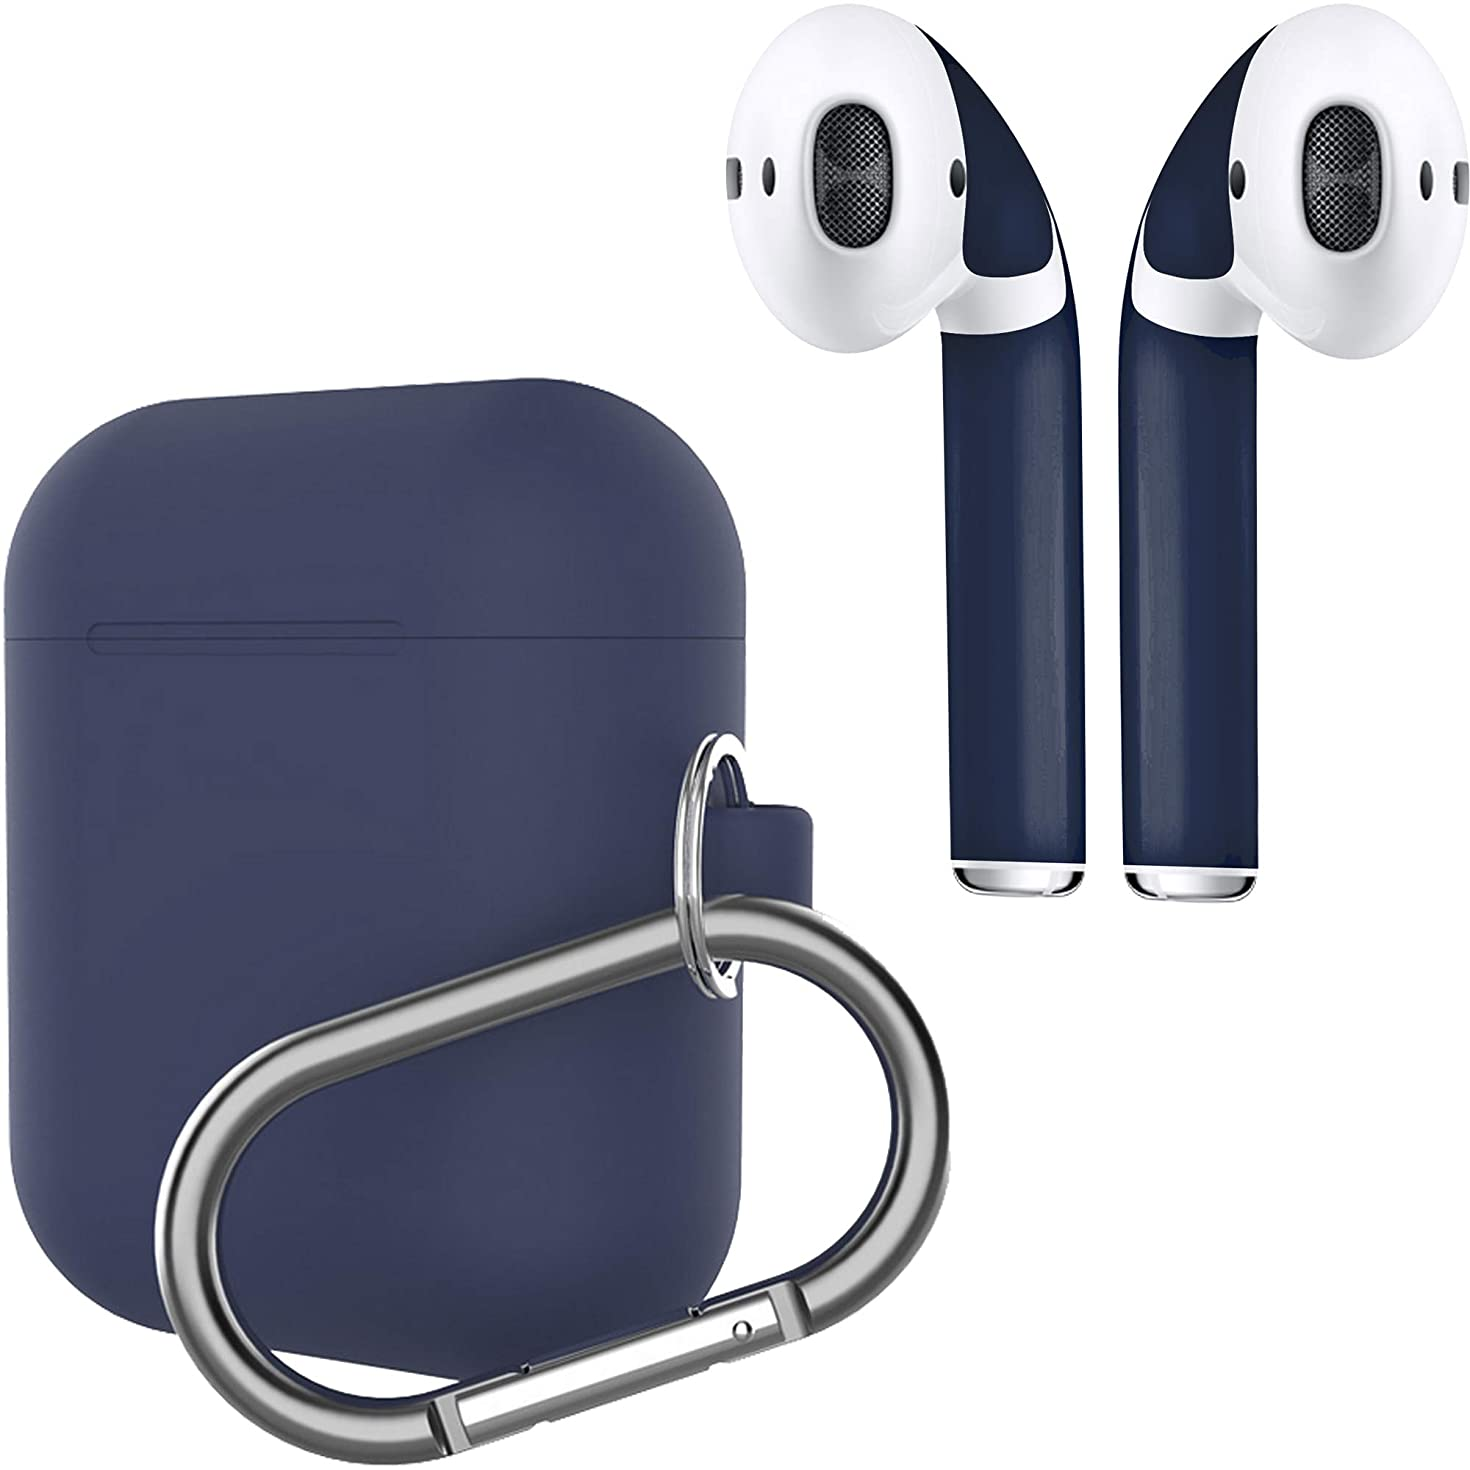 APSkins Protective Silicone Case Cover and AirPod Skins - Slim Keychain Carabiner Clip and Color Matched Wraps – Compatible with Apple AirPods - Protect Your Earphones (Midnight Blue)